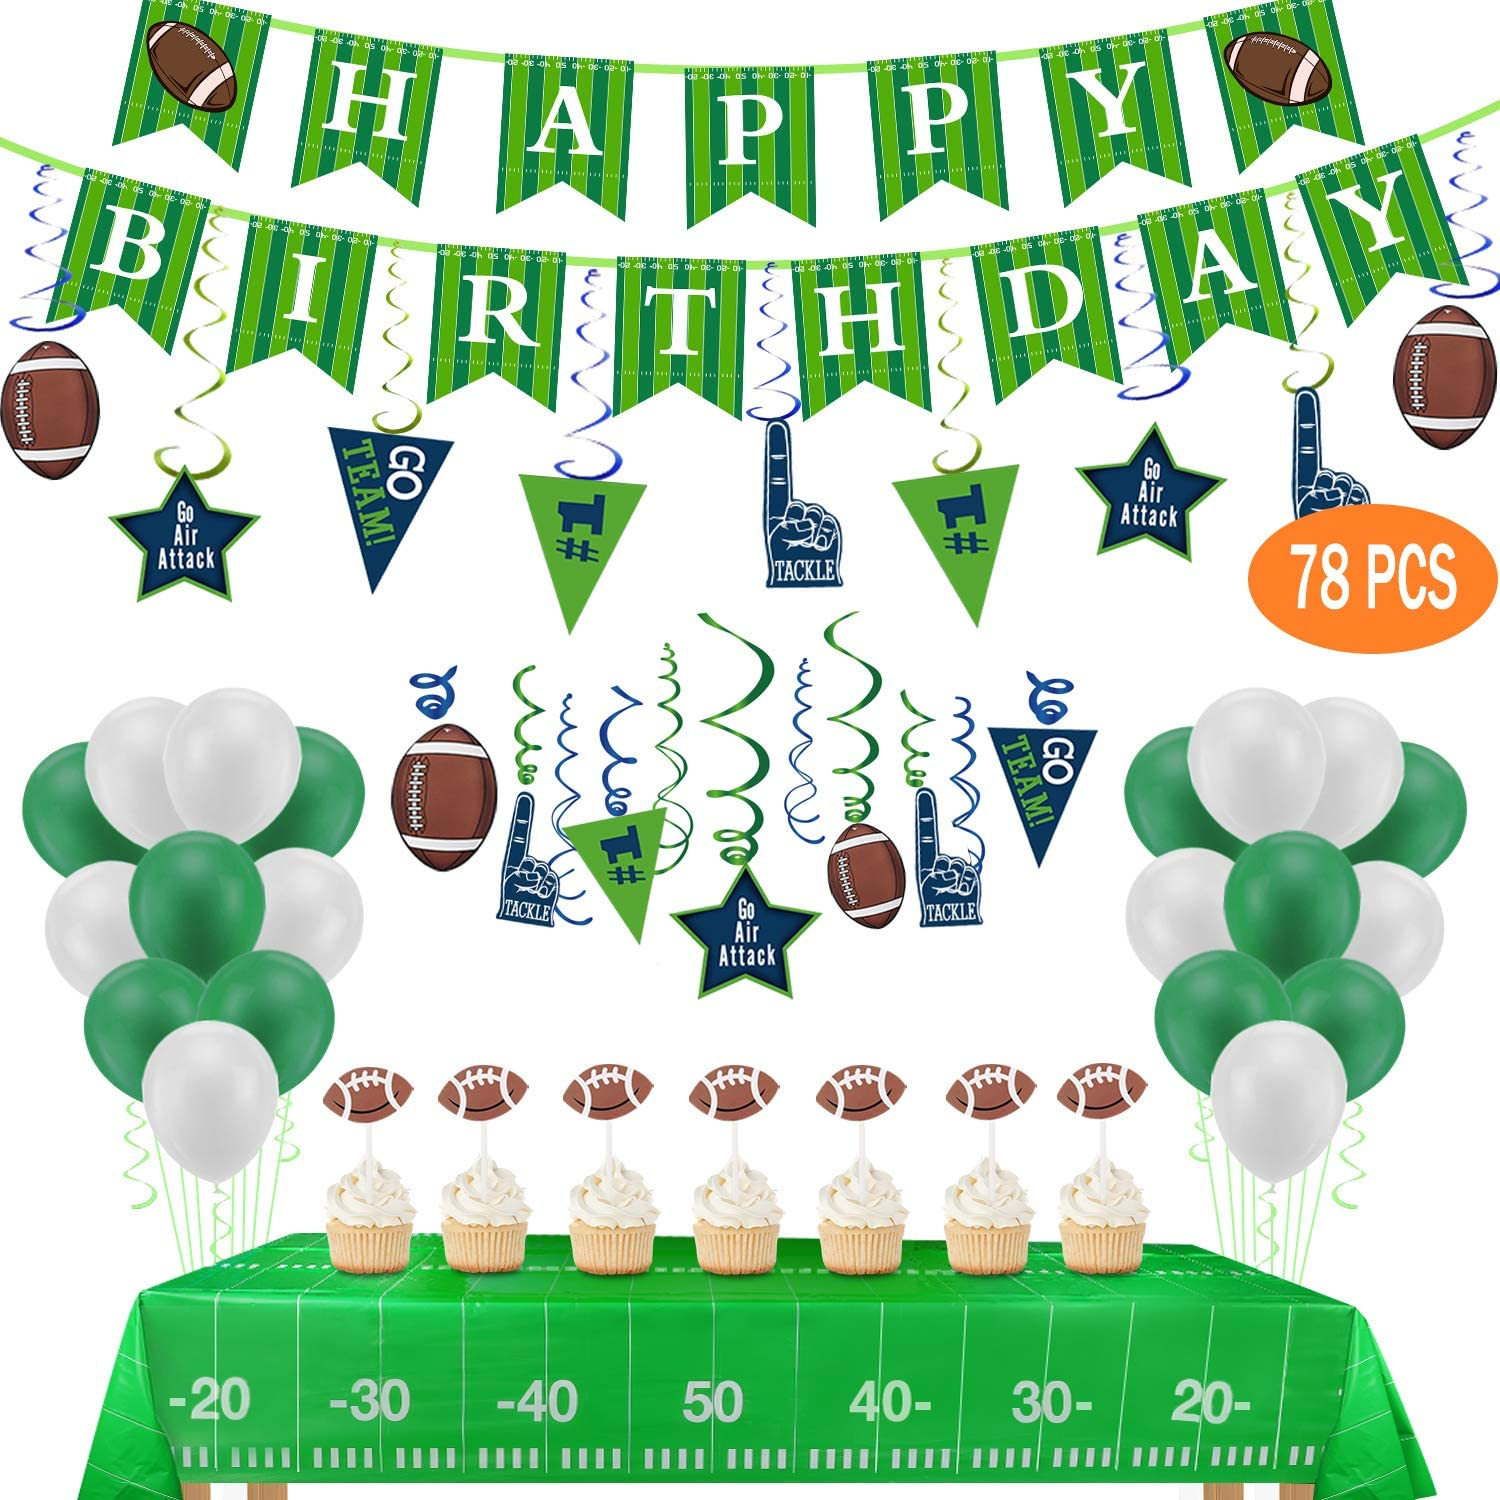 Football Birthday Party Decorations-Include Banners,2 Tablecovers(54x72),30Ct Hanging Swirl Decorations,24 Cupcake Toppers,20 Balloons for ...